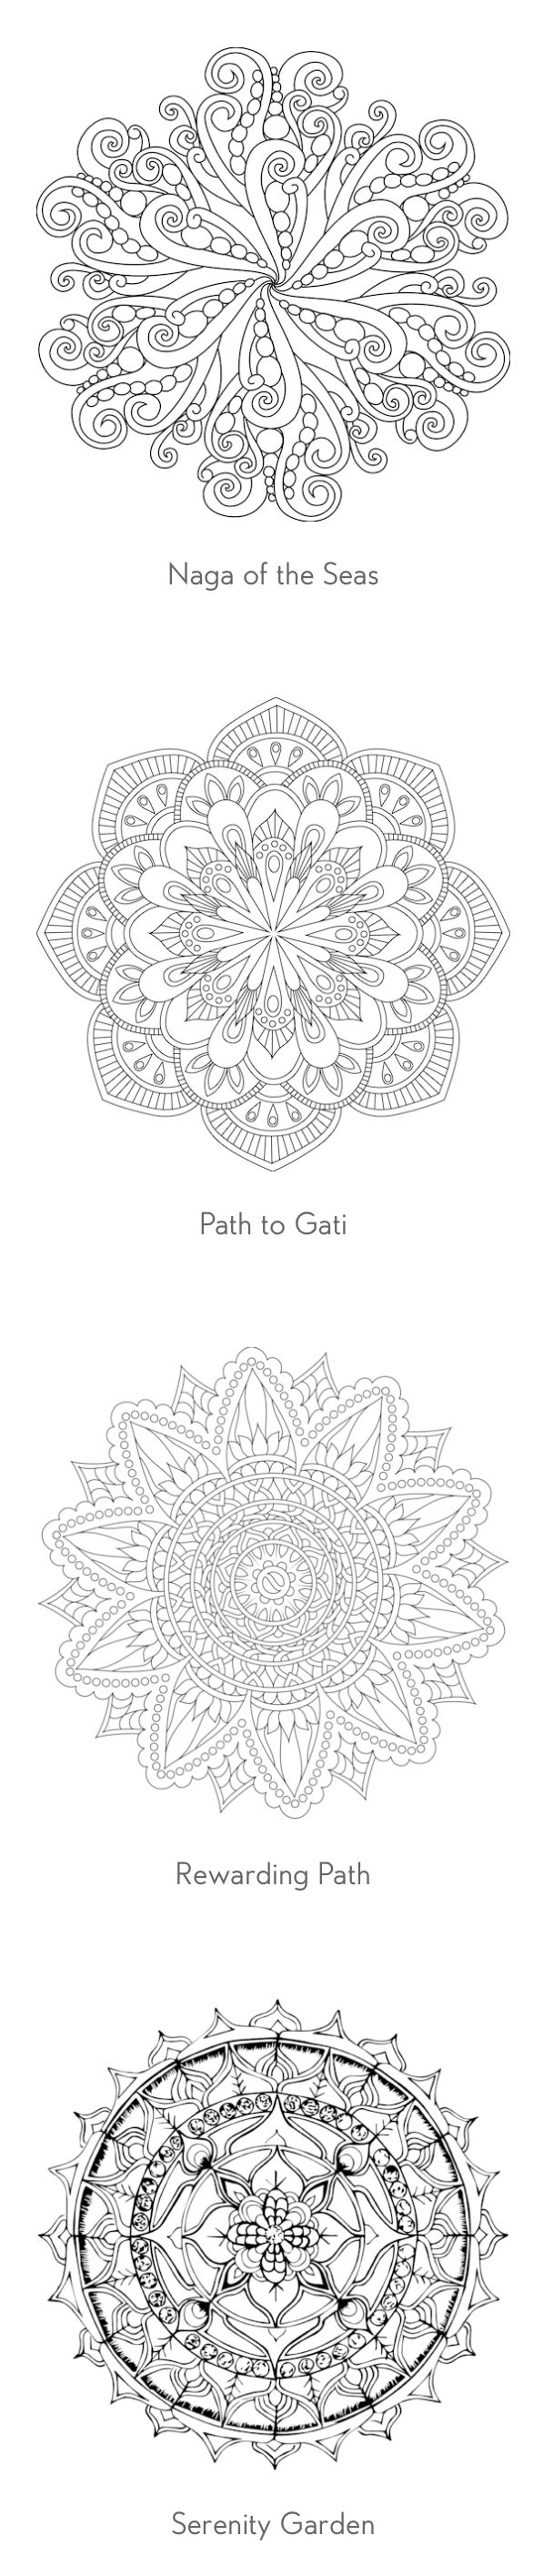 Coloring pages up - Over 90 Free Coloring Pages Of Mandalas